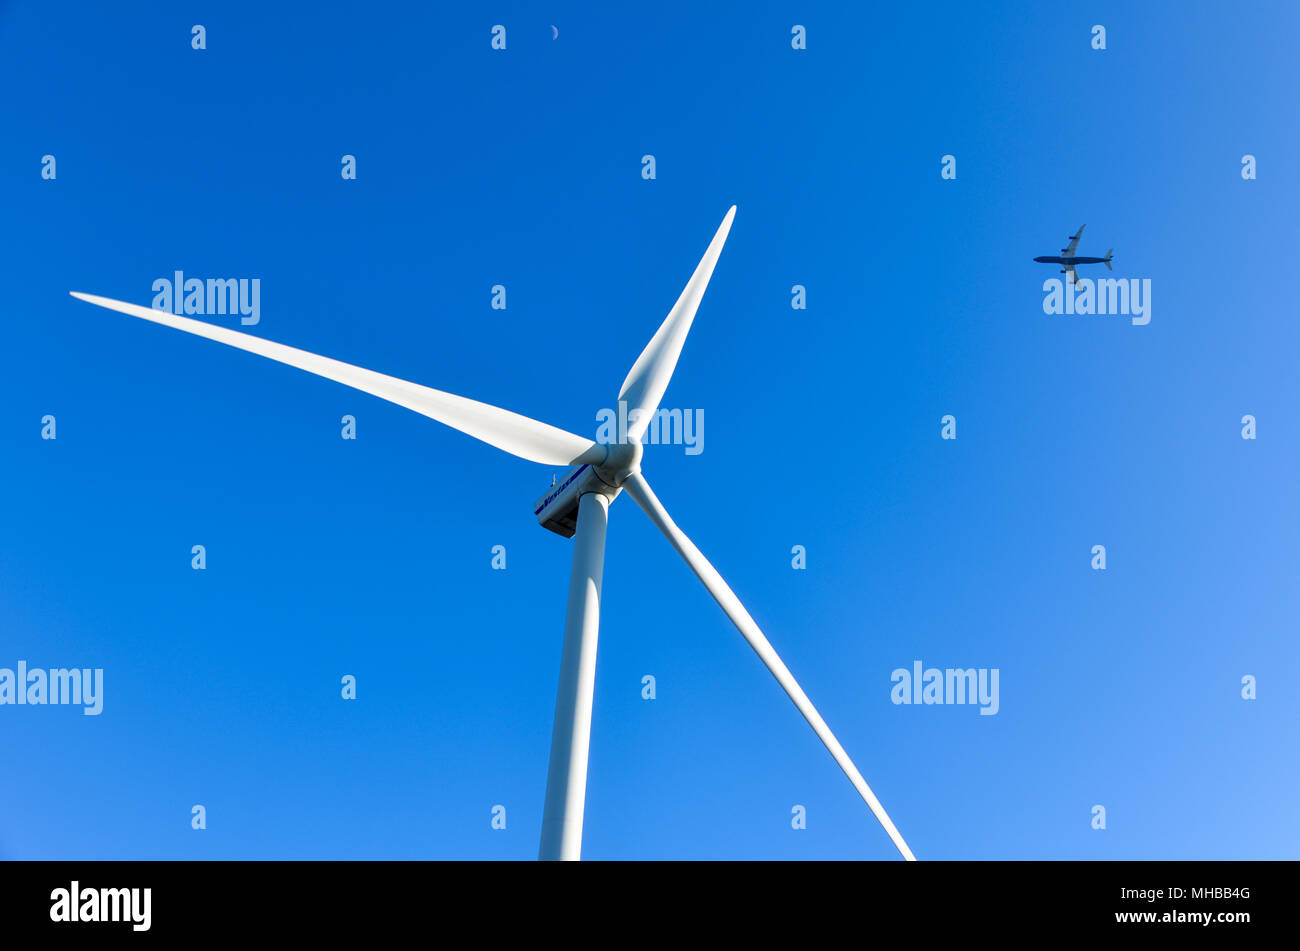 Plane flying behind a wind turbine on a blue sky background - Stock Image